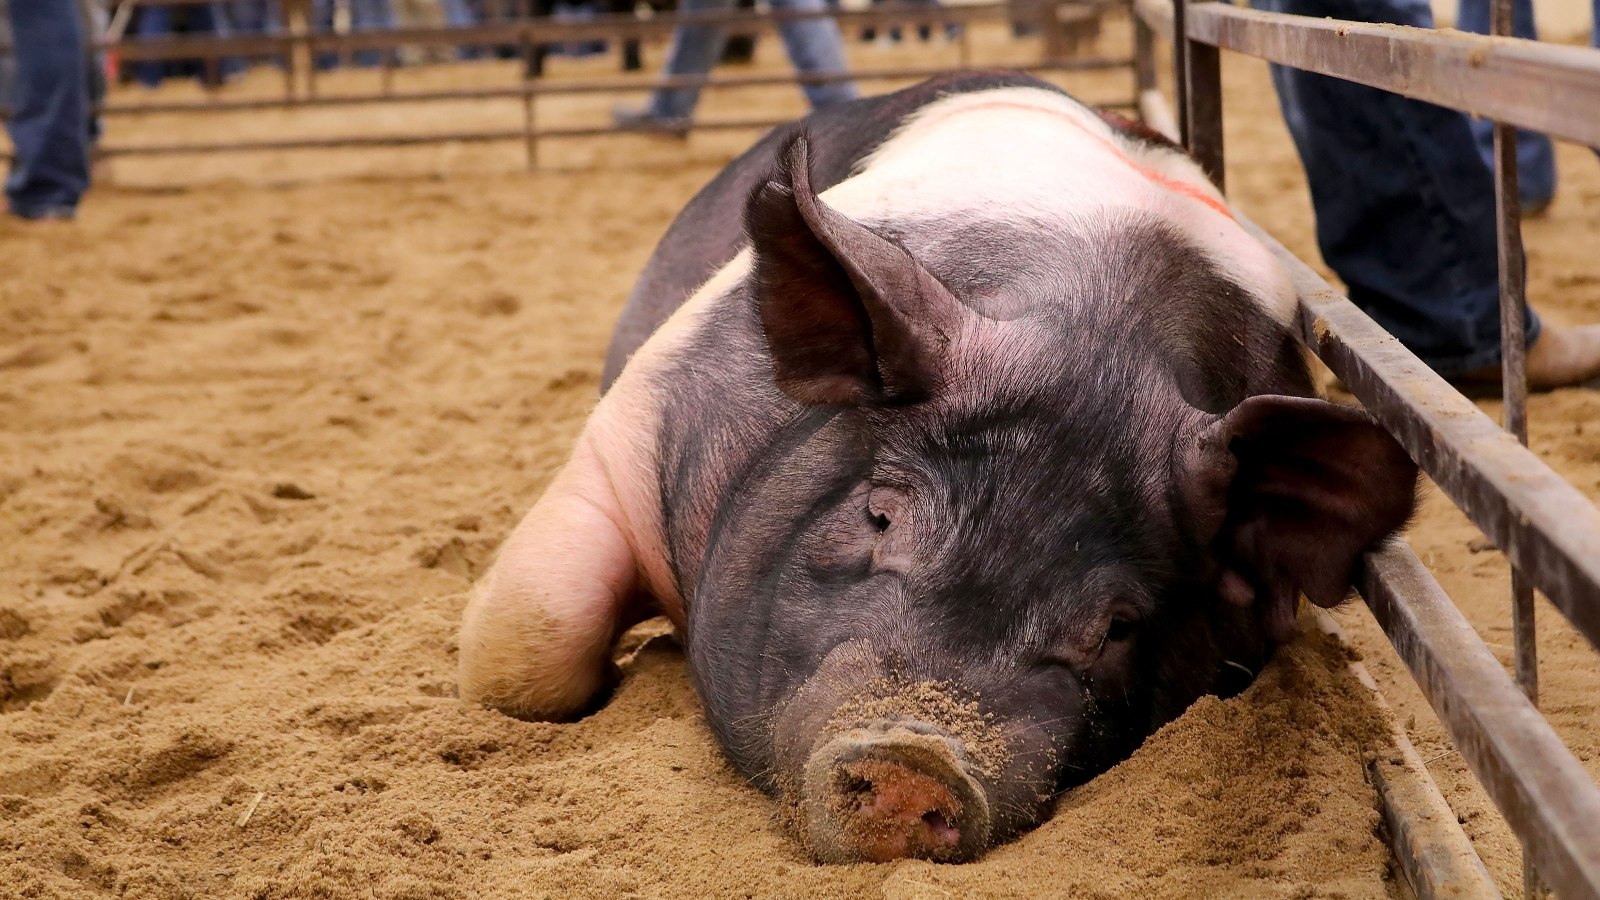 Pig laying down in sand